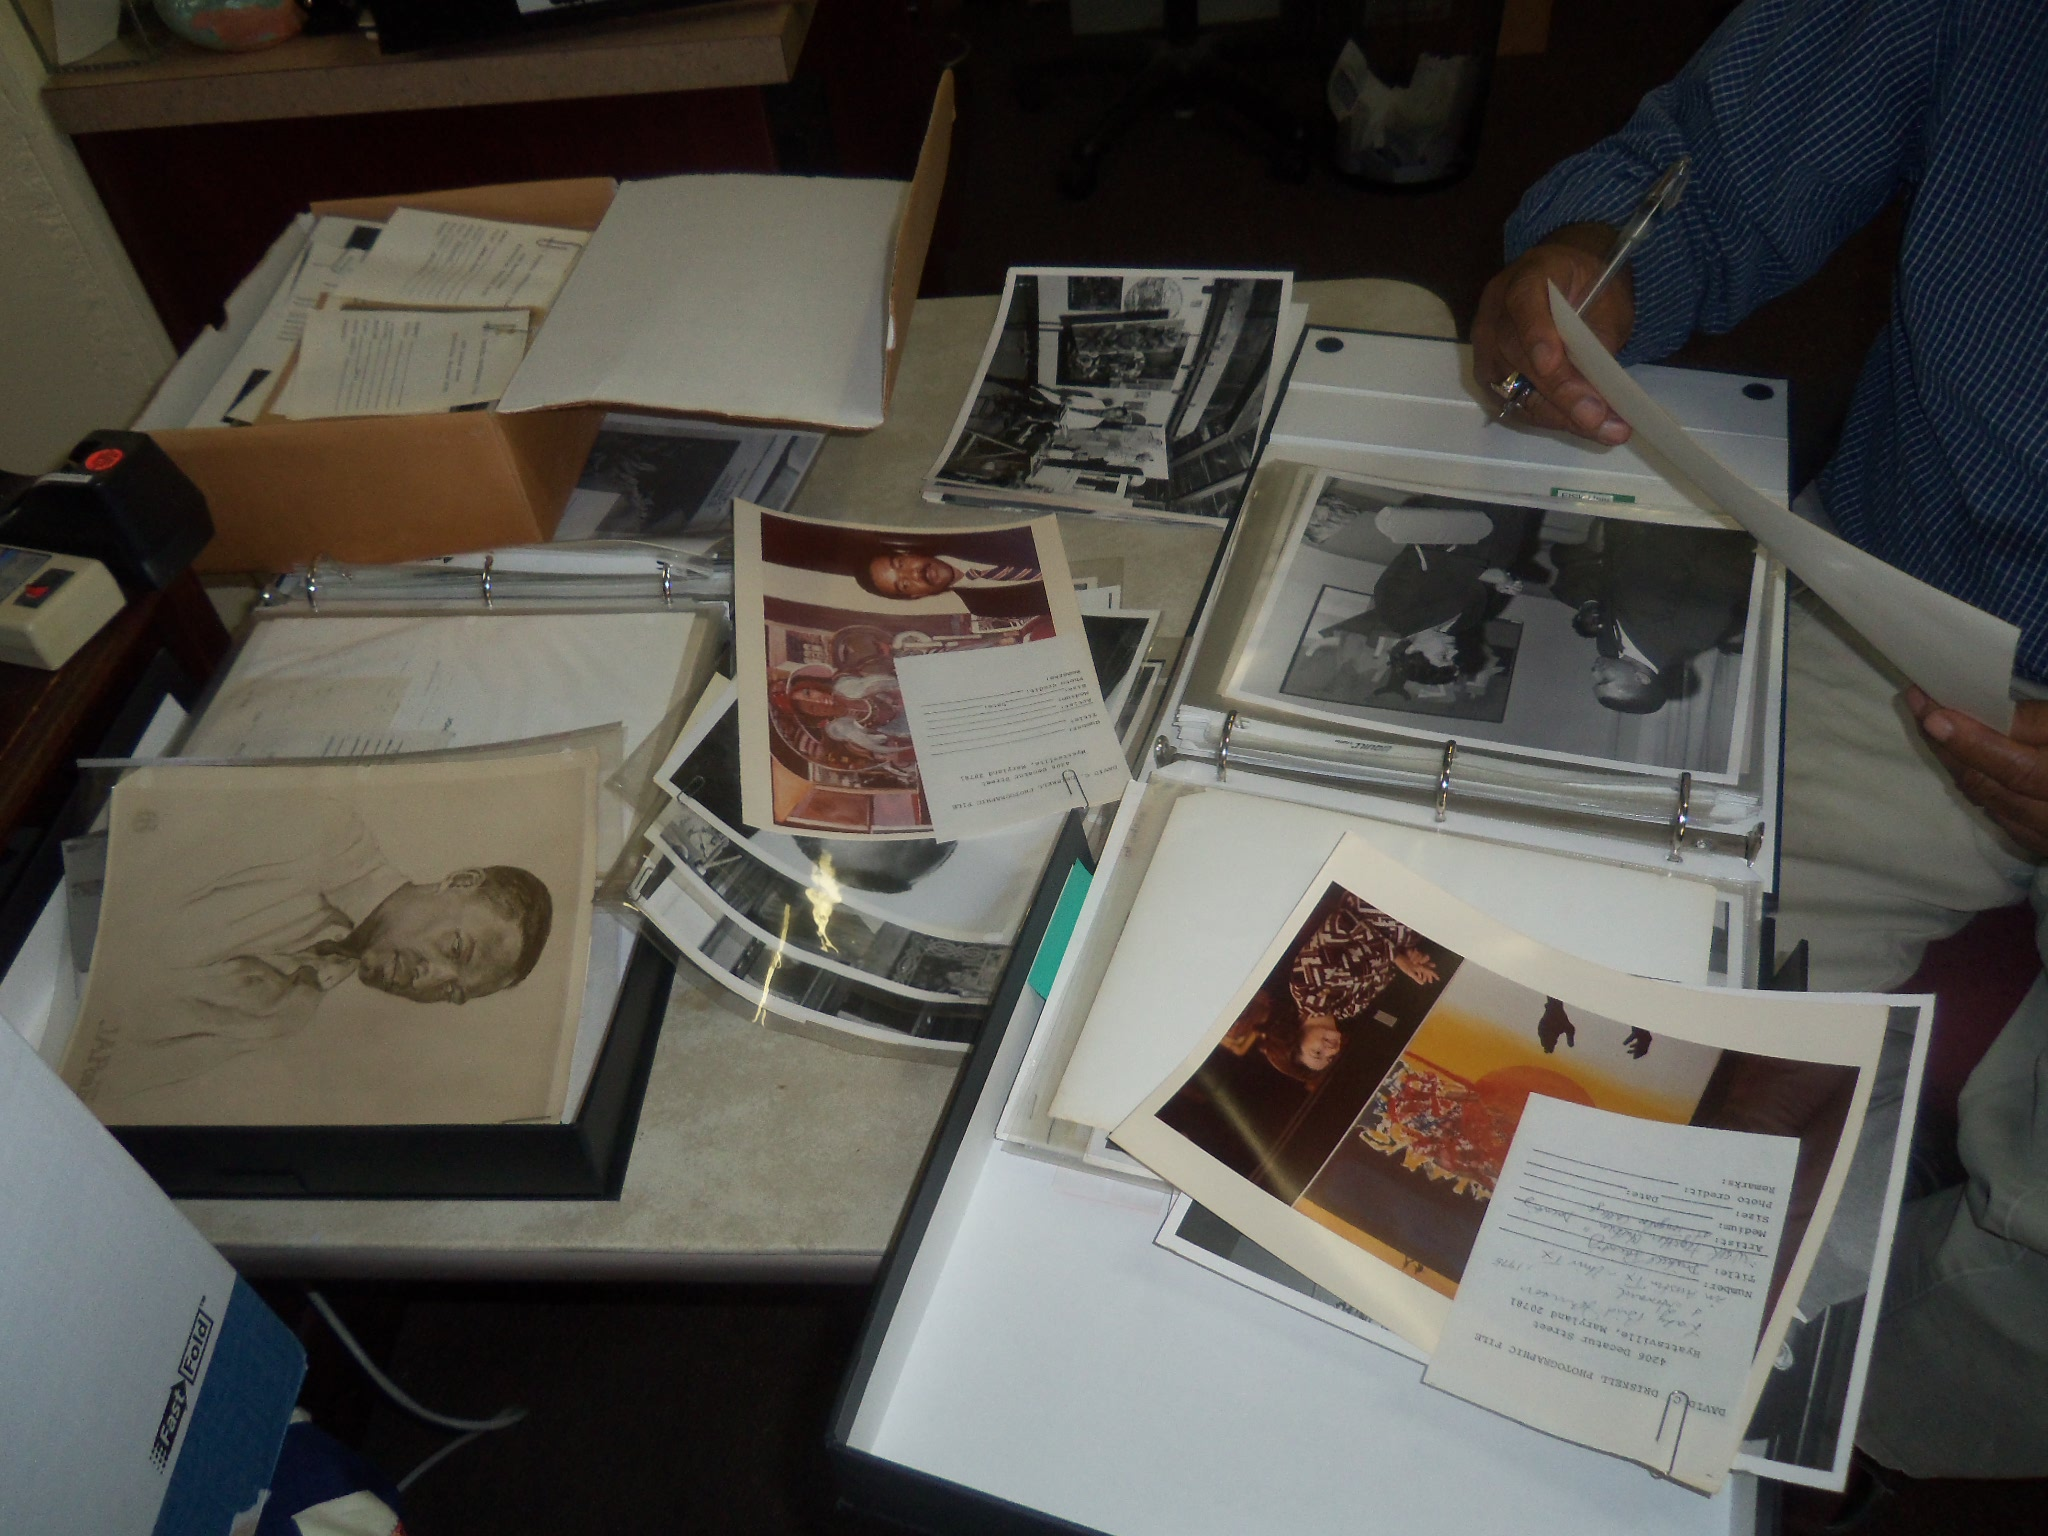 Old photos of Professor Driskel scattered on table